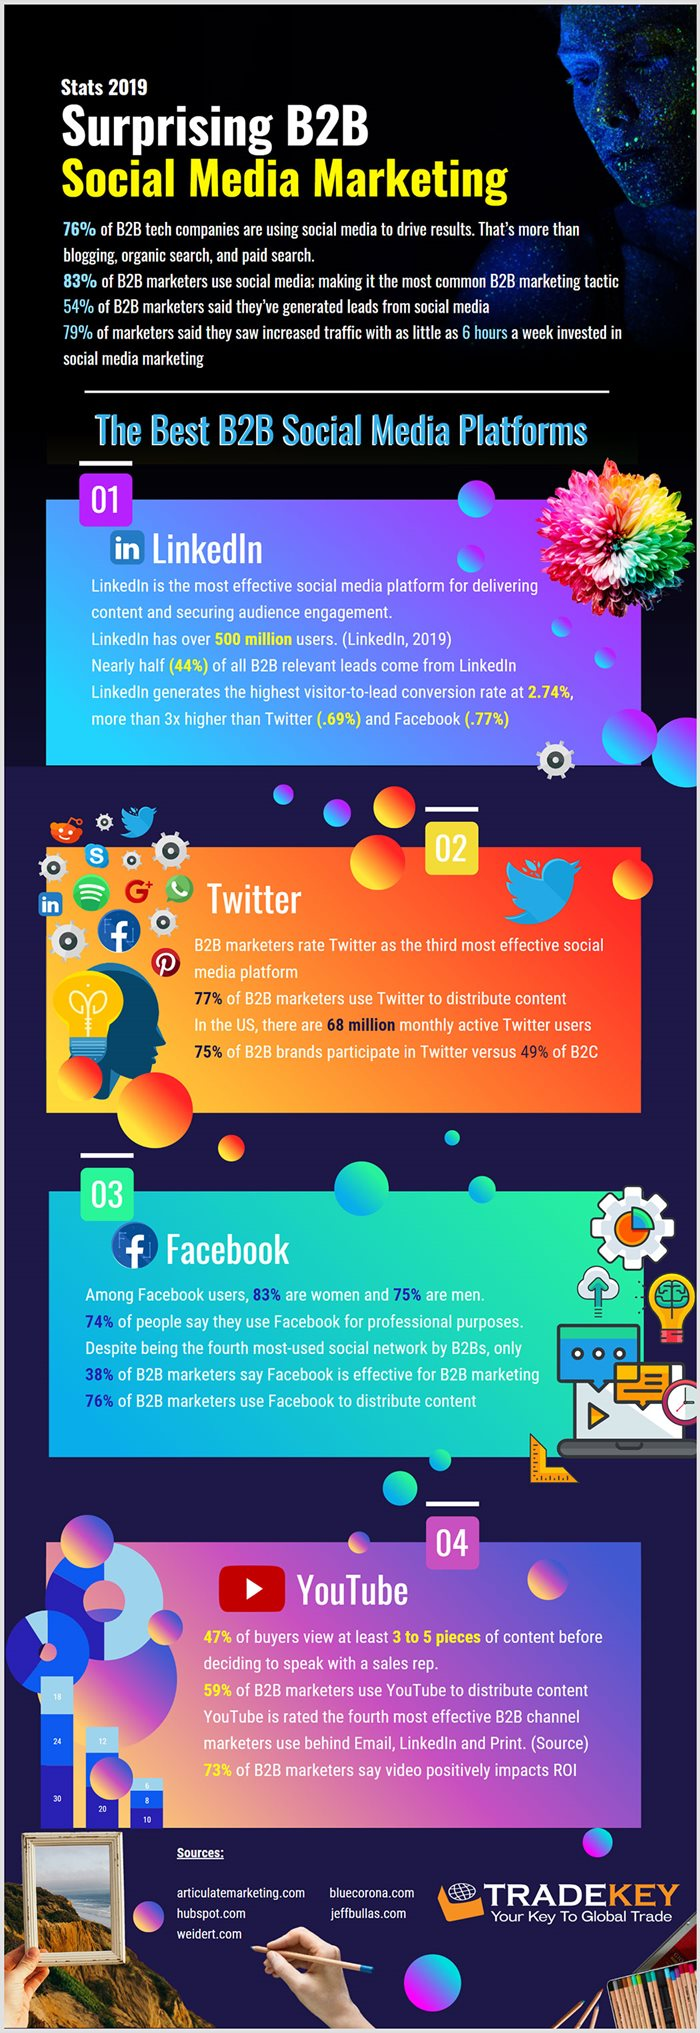 Surprising-B2B-Social-Media-Marketing-Stats-2019.jpg